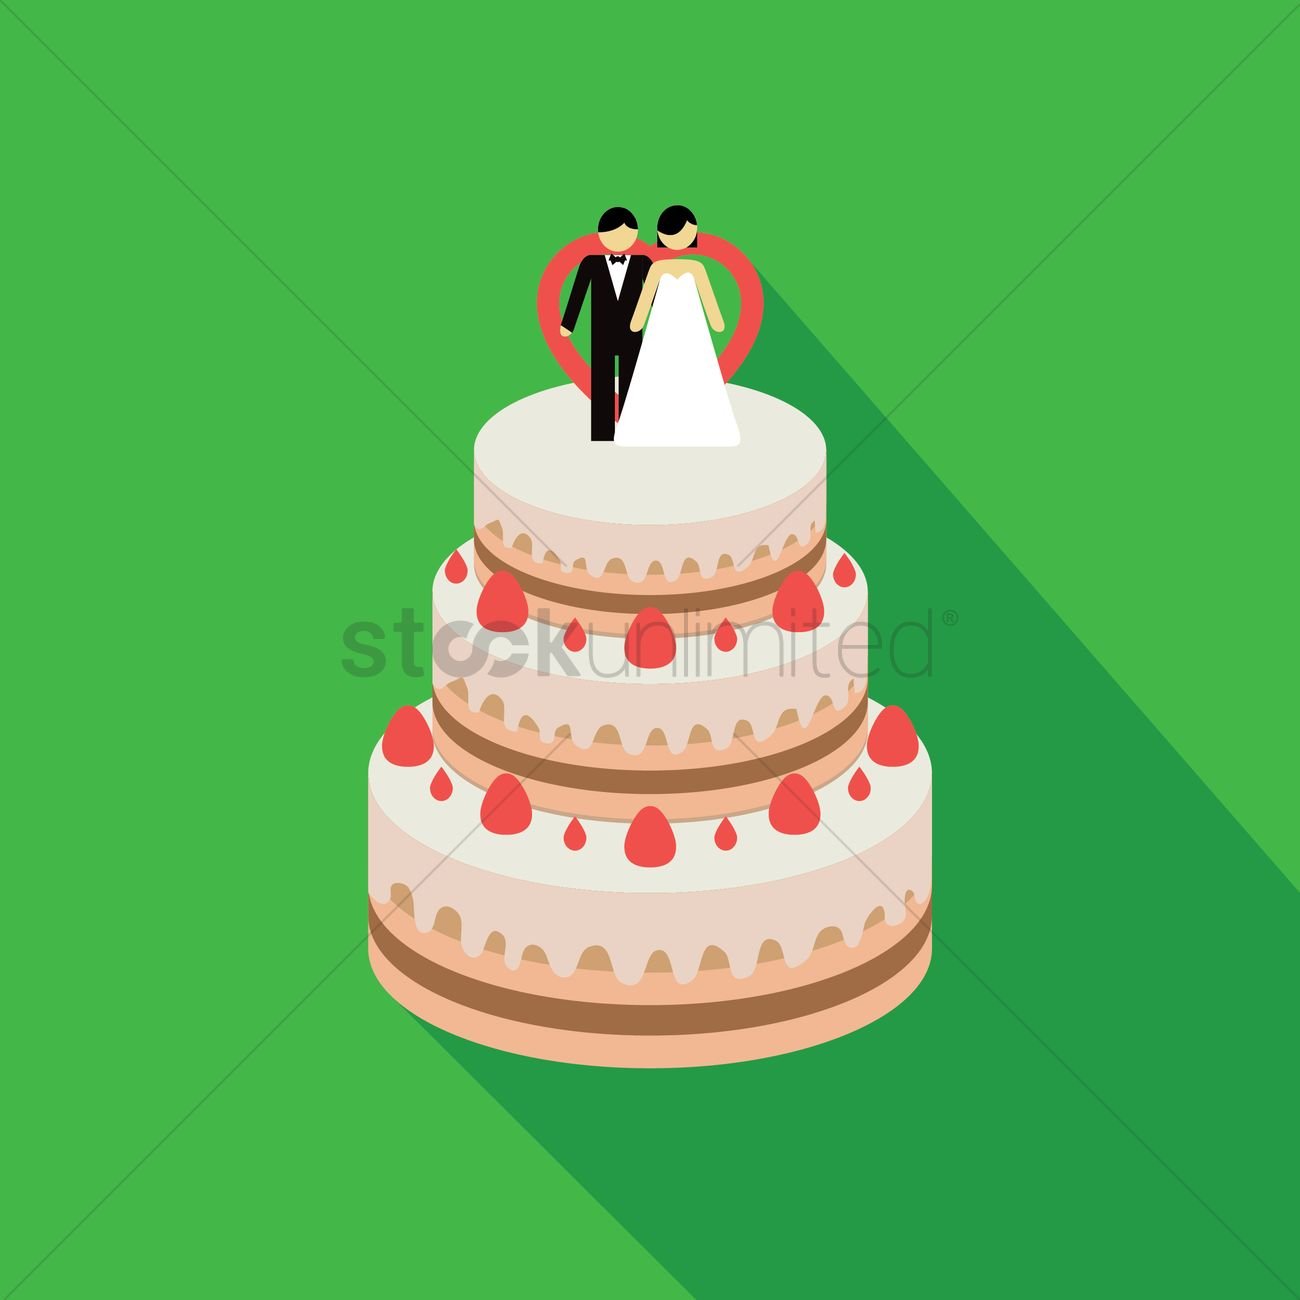 Wedding Cake With Couple Decoration Vector Image 1328578 Stockunlimited